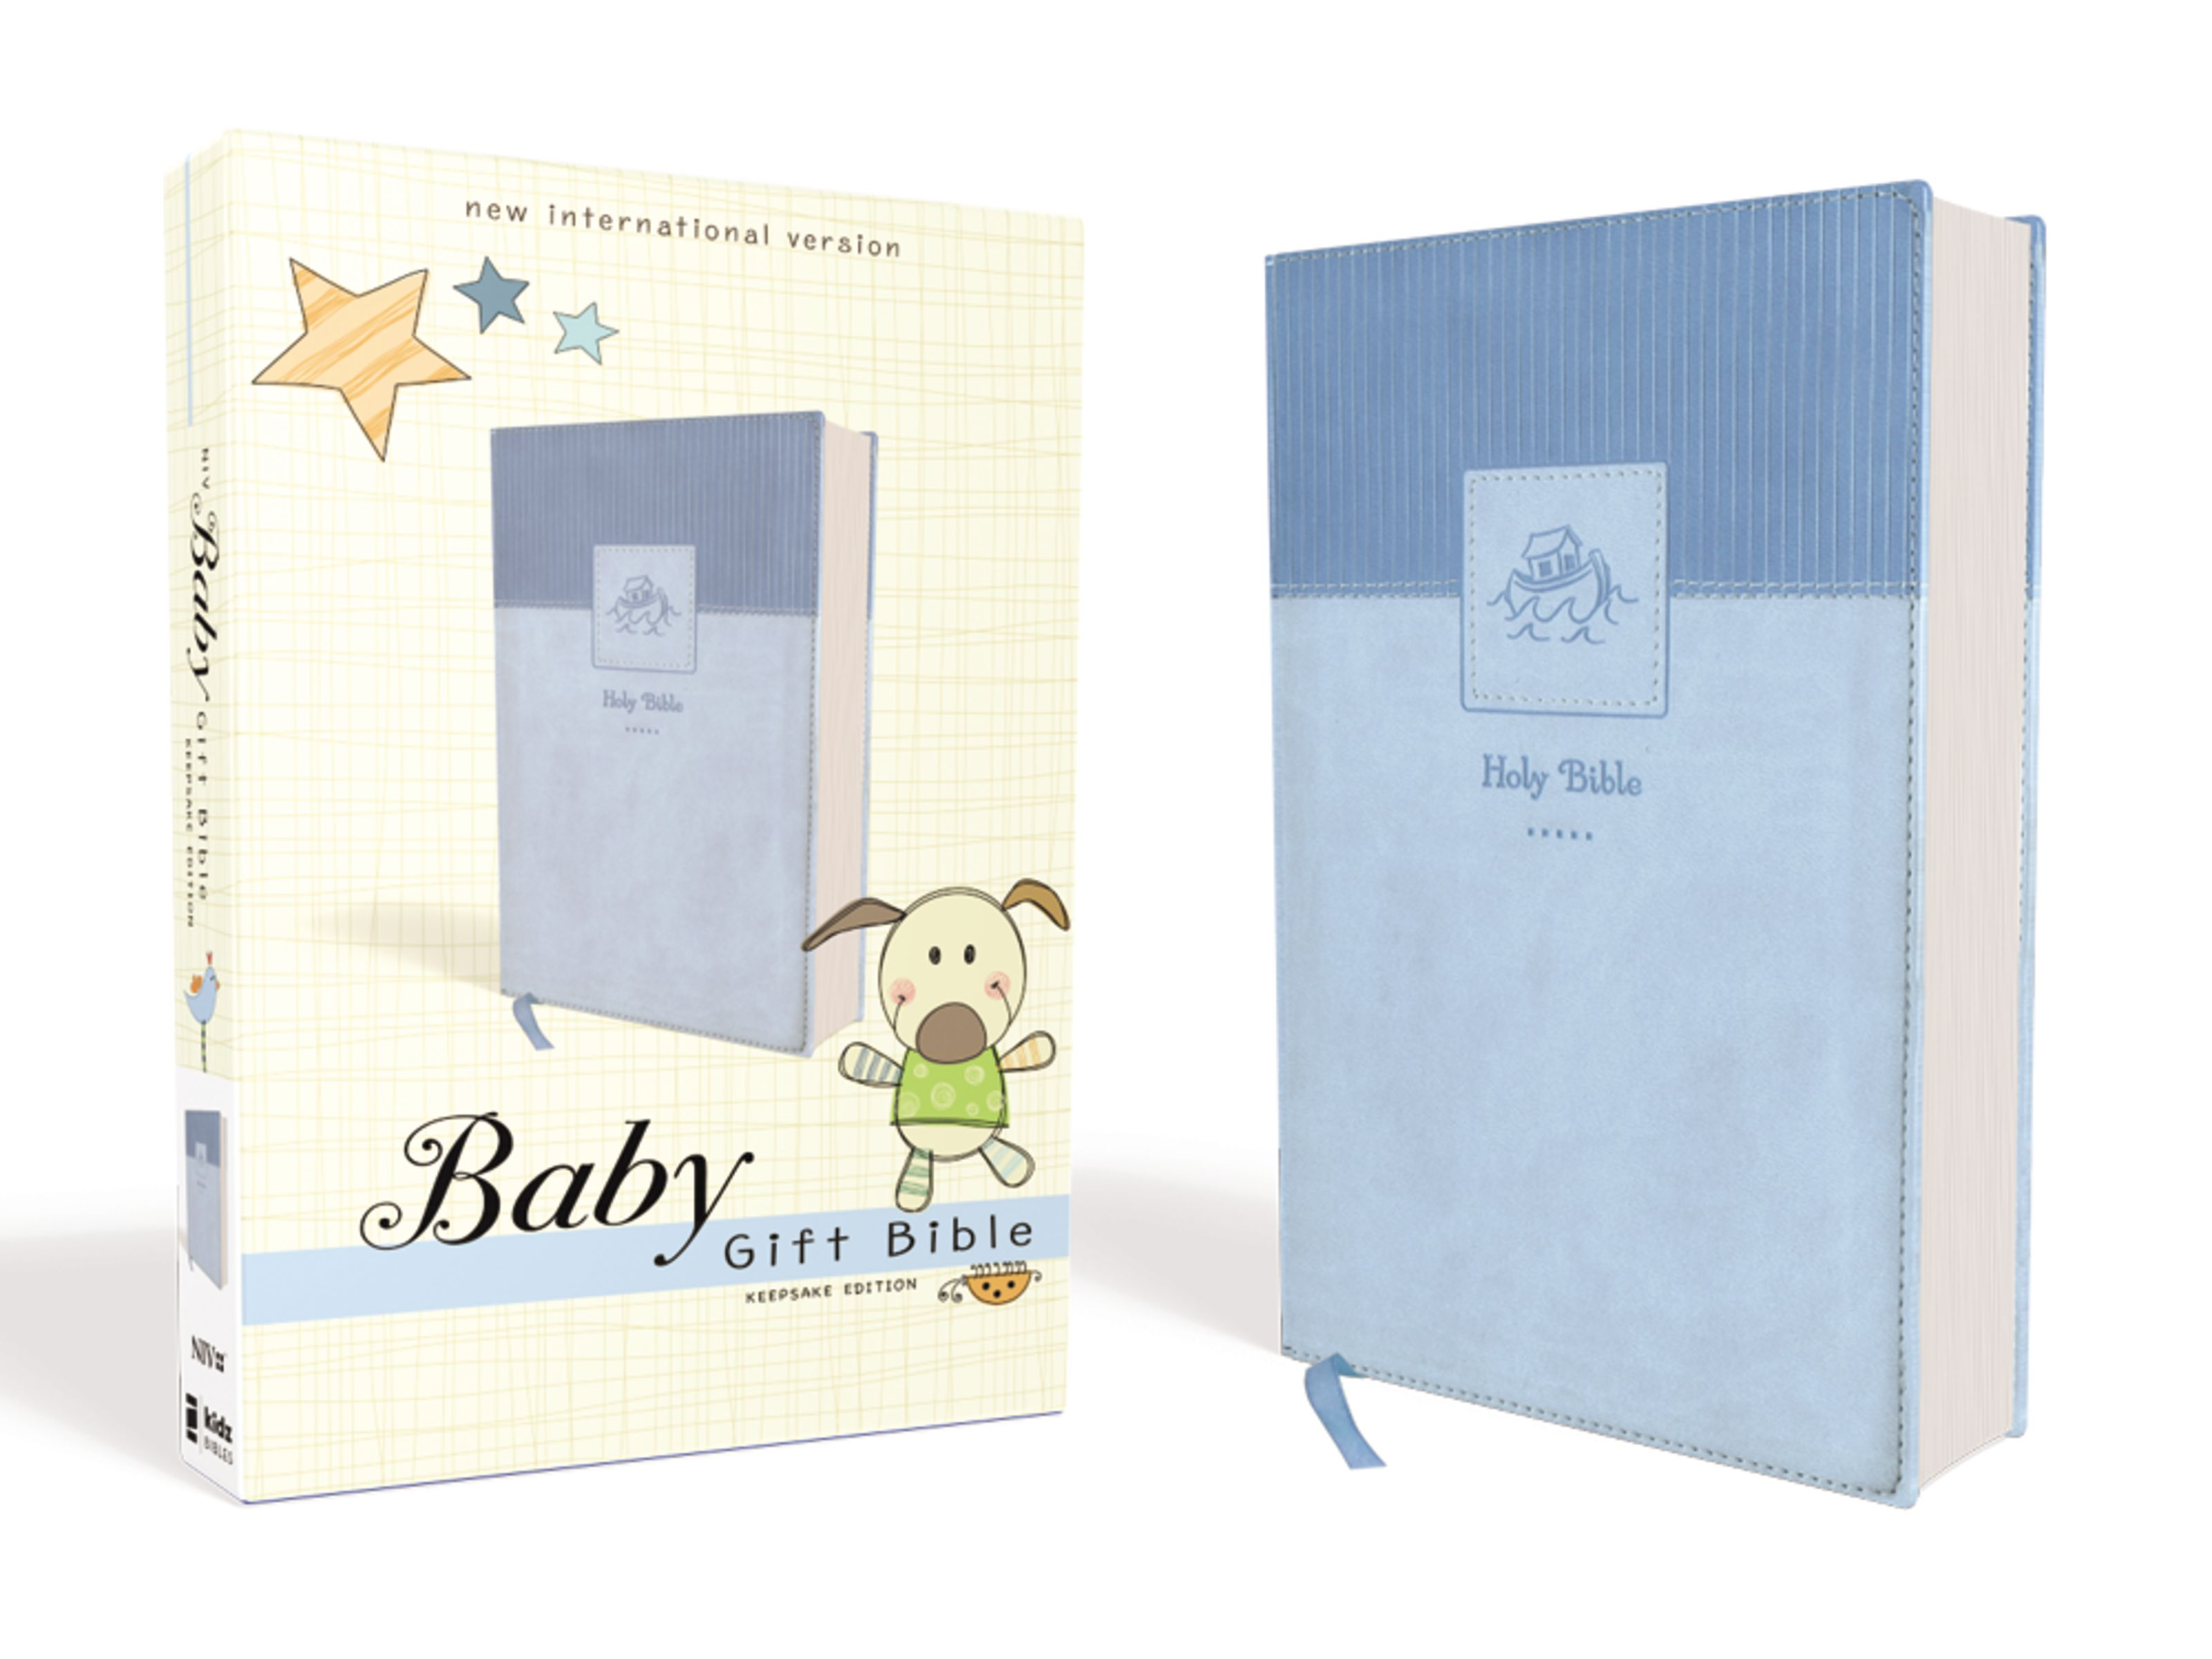 NIV Baby Gift Bible Holy Leathersoft Blue Red Letter Edition